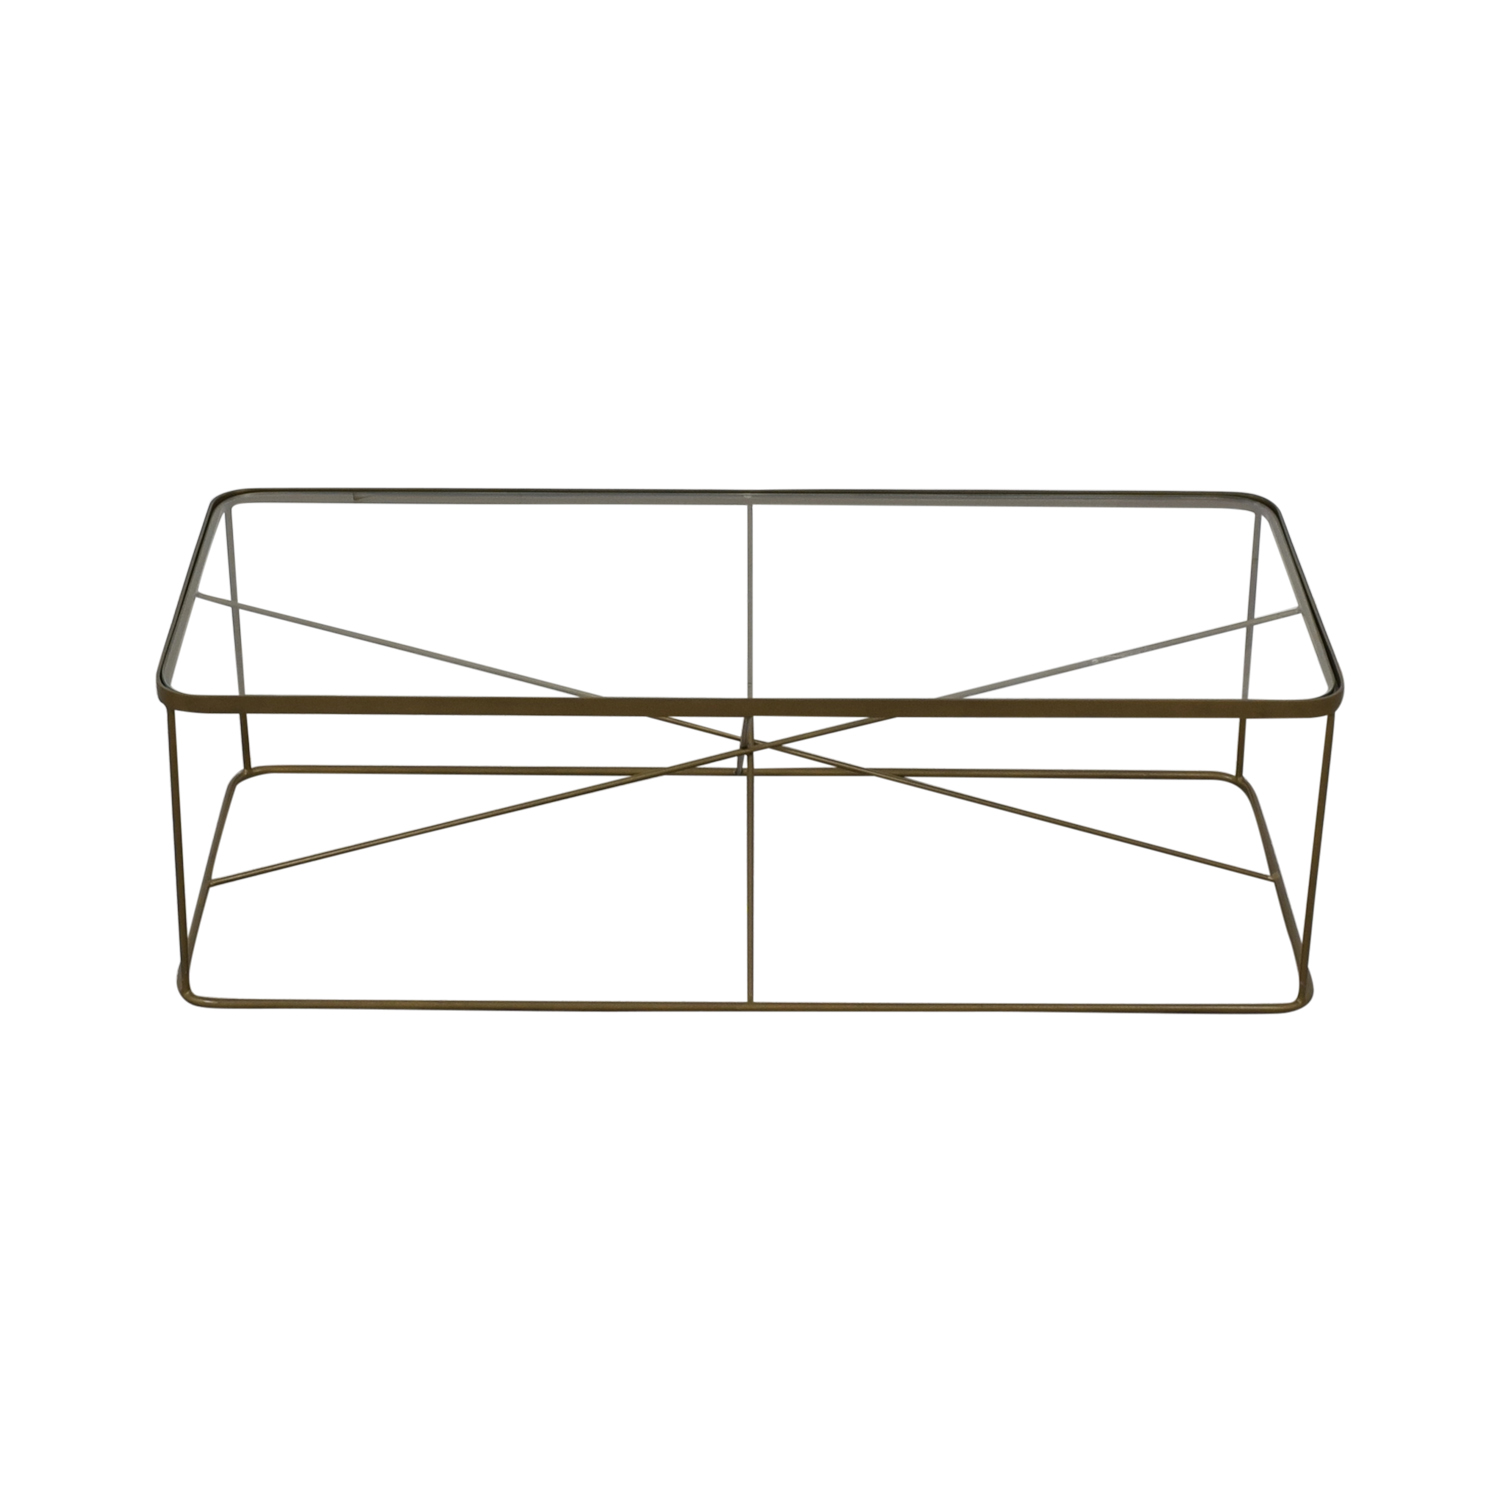 Four Hands Coffee Table / Tables